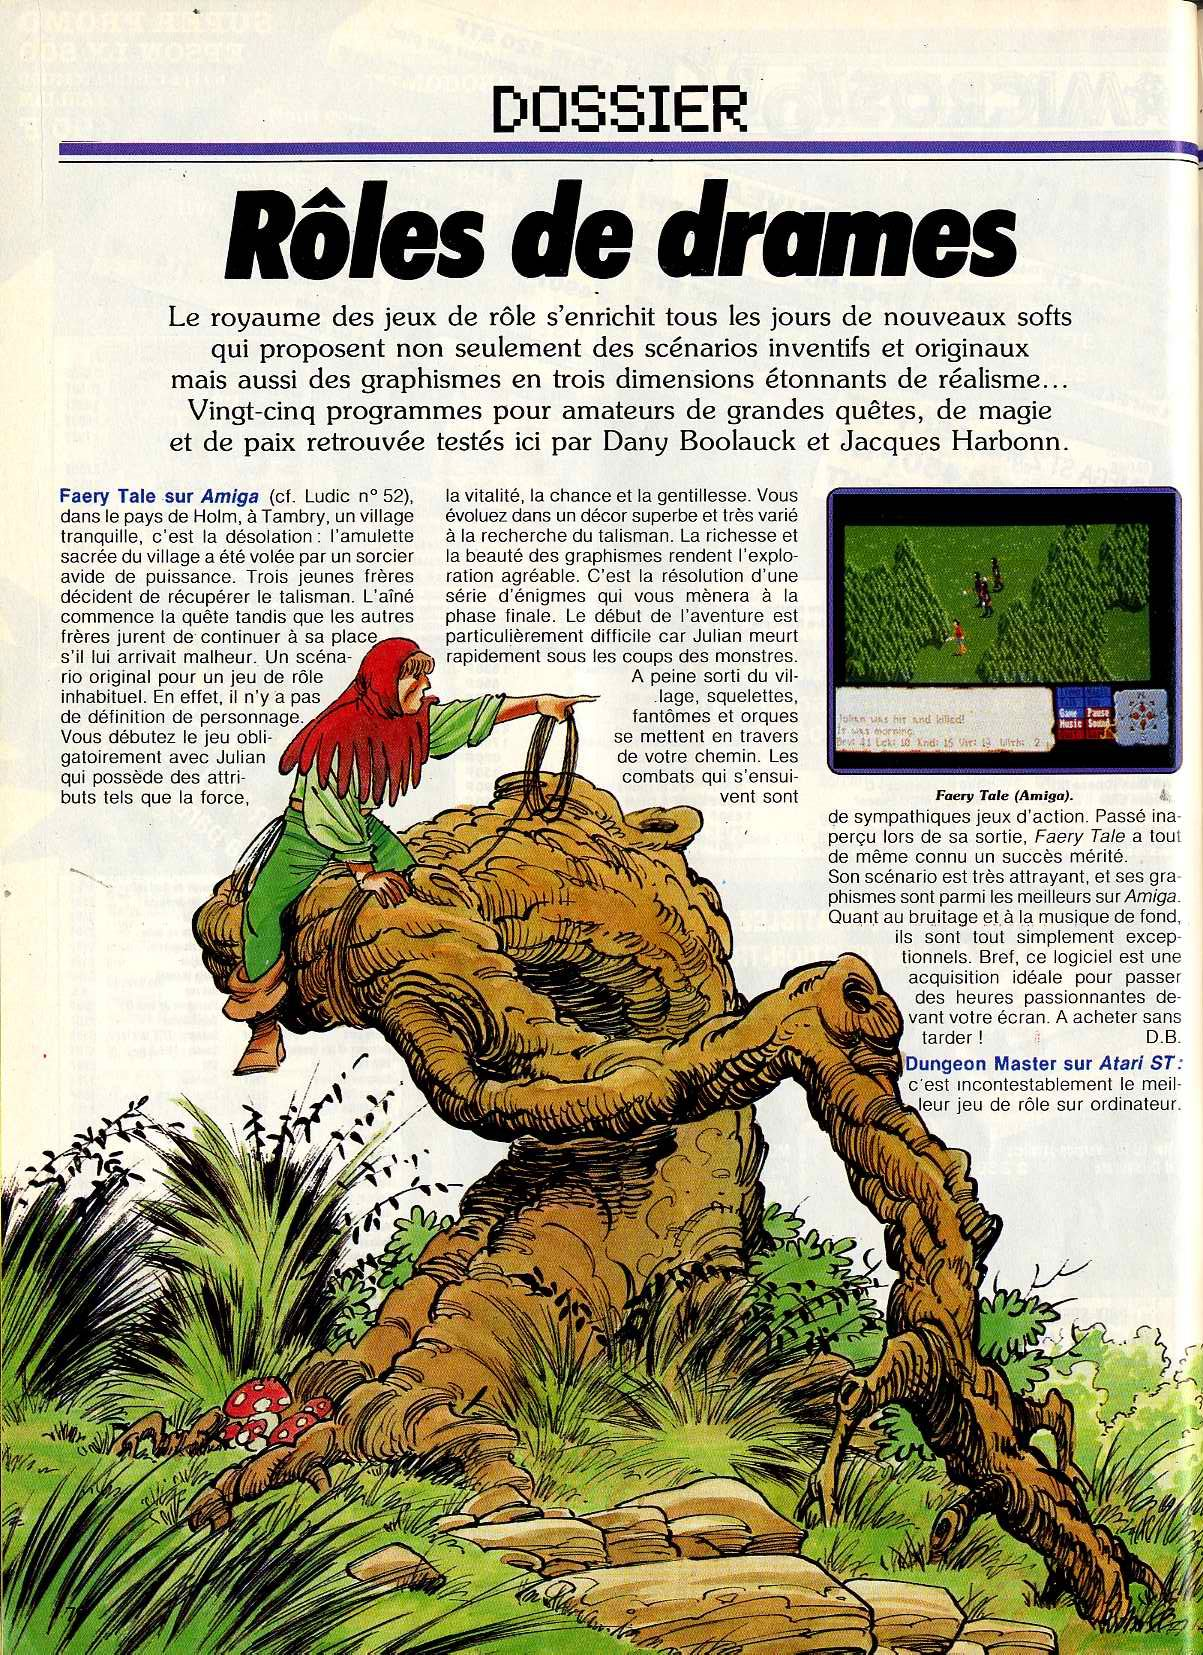 Dungeon Master for Atari ST Article published in French magazine 'Tilt', Issue #53 April 1988, Page 78